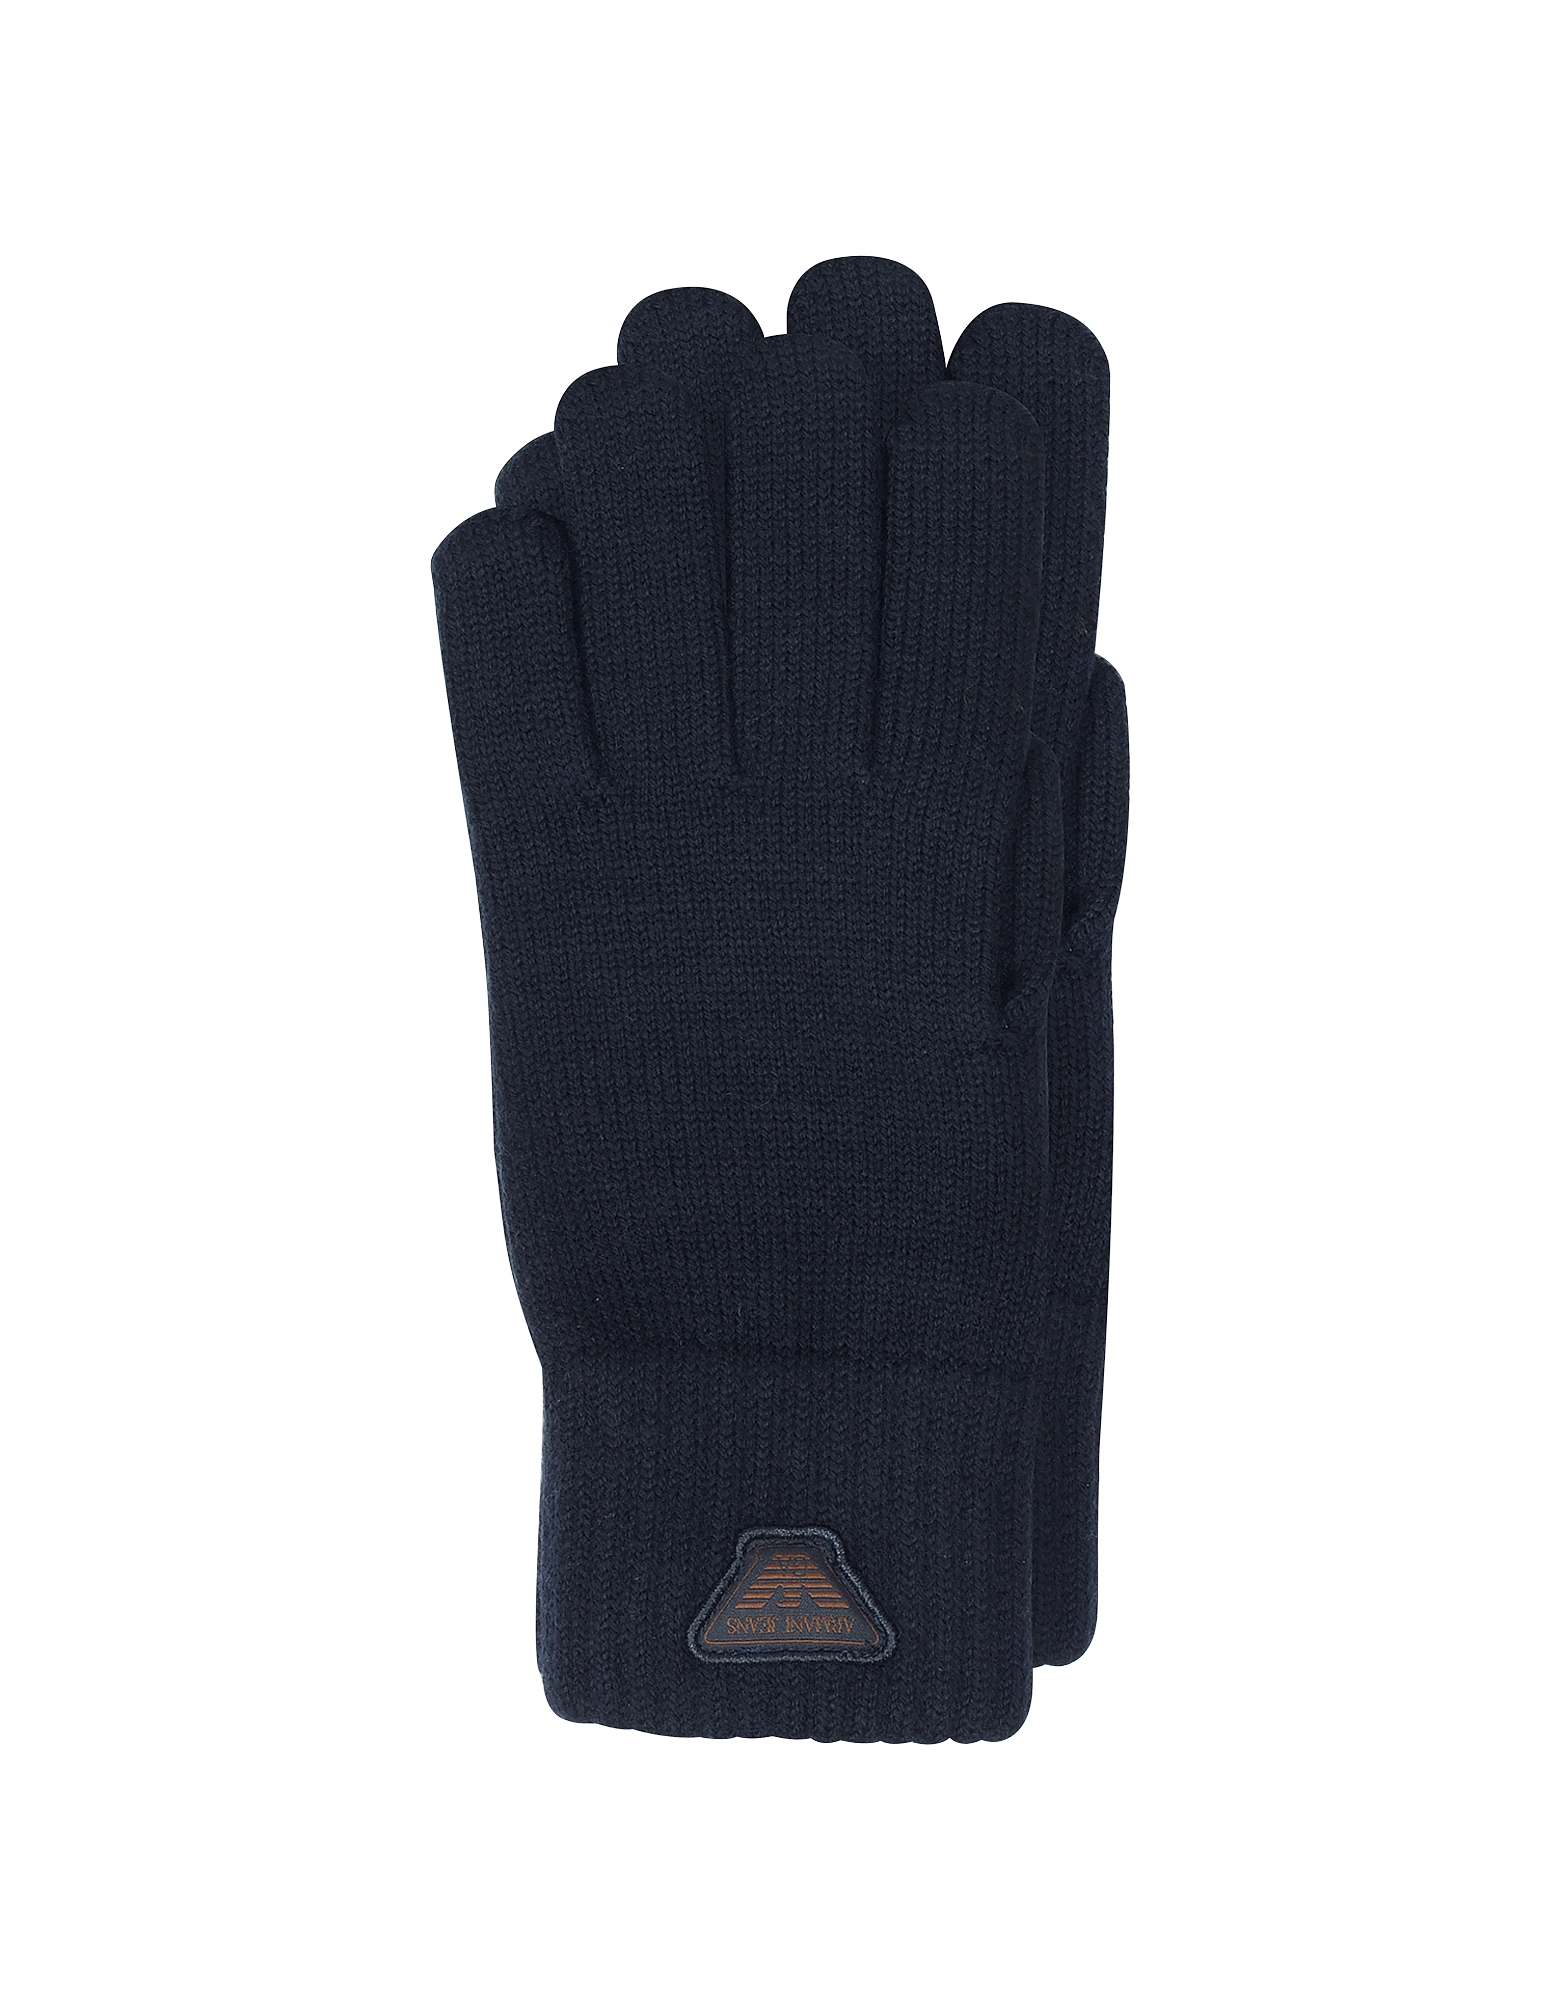 Armani Jeans Men's Gloves, Blue Wool Blend Men's Gloves